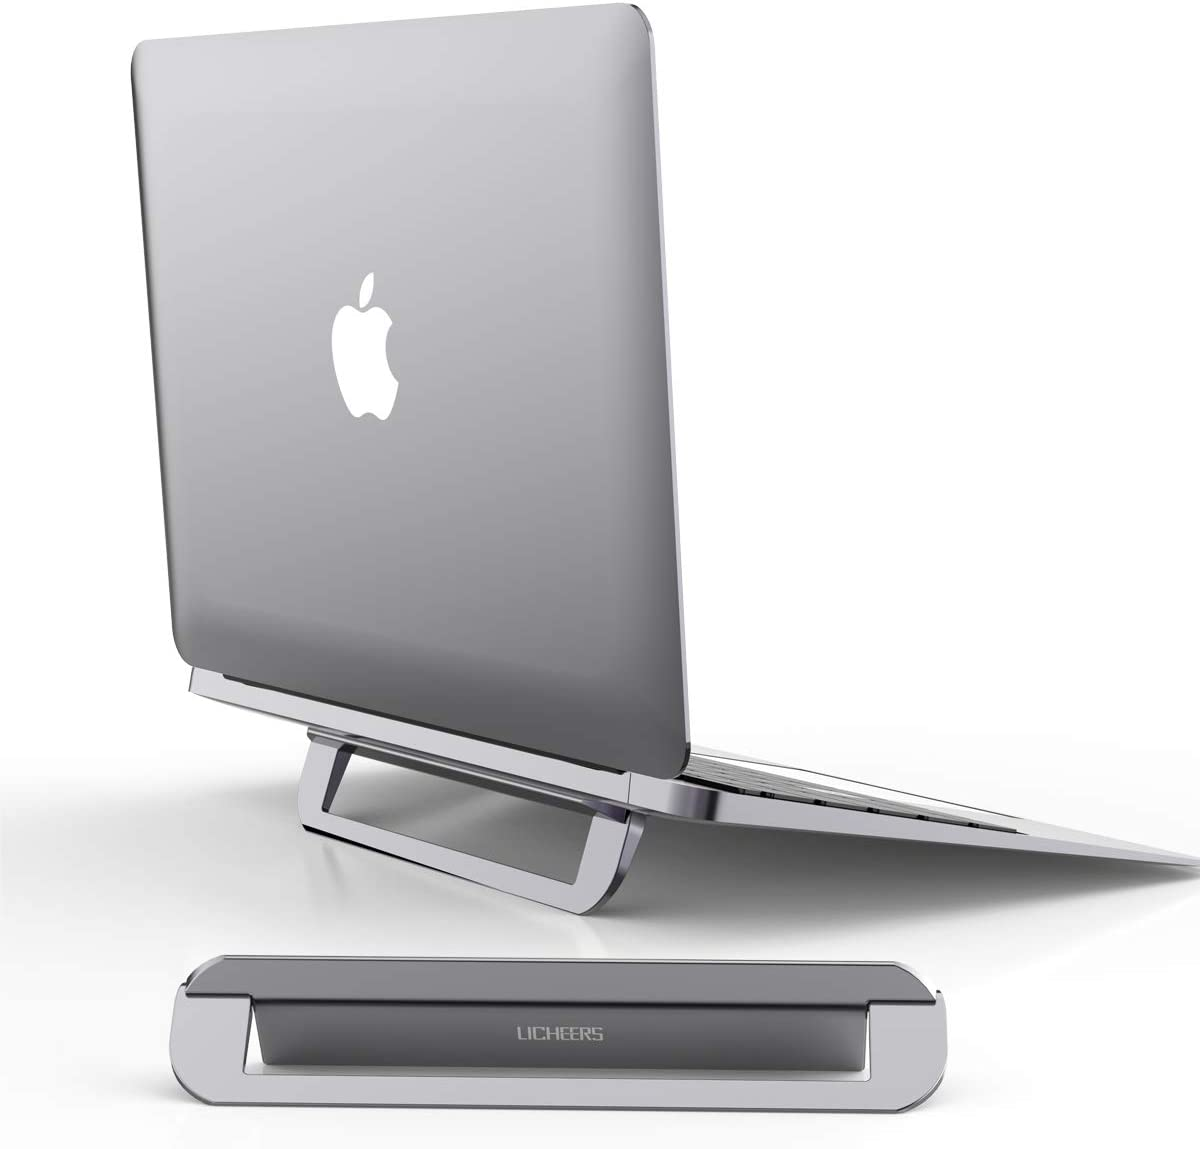 Laptop Stand, Licheers Invisible Aluminum Notebook Stand for Desk, Foldable Laptop Holder Compatible with All 10